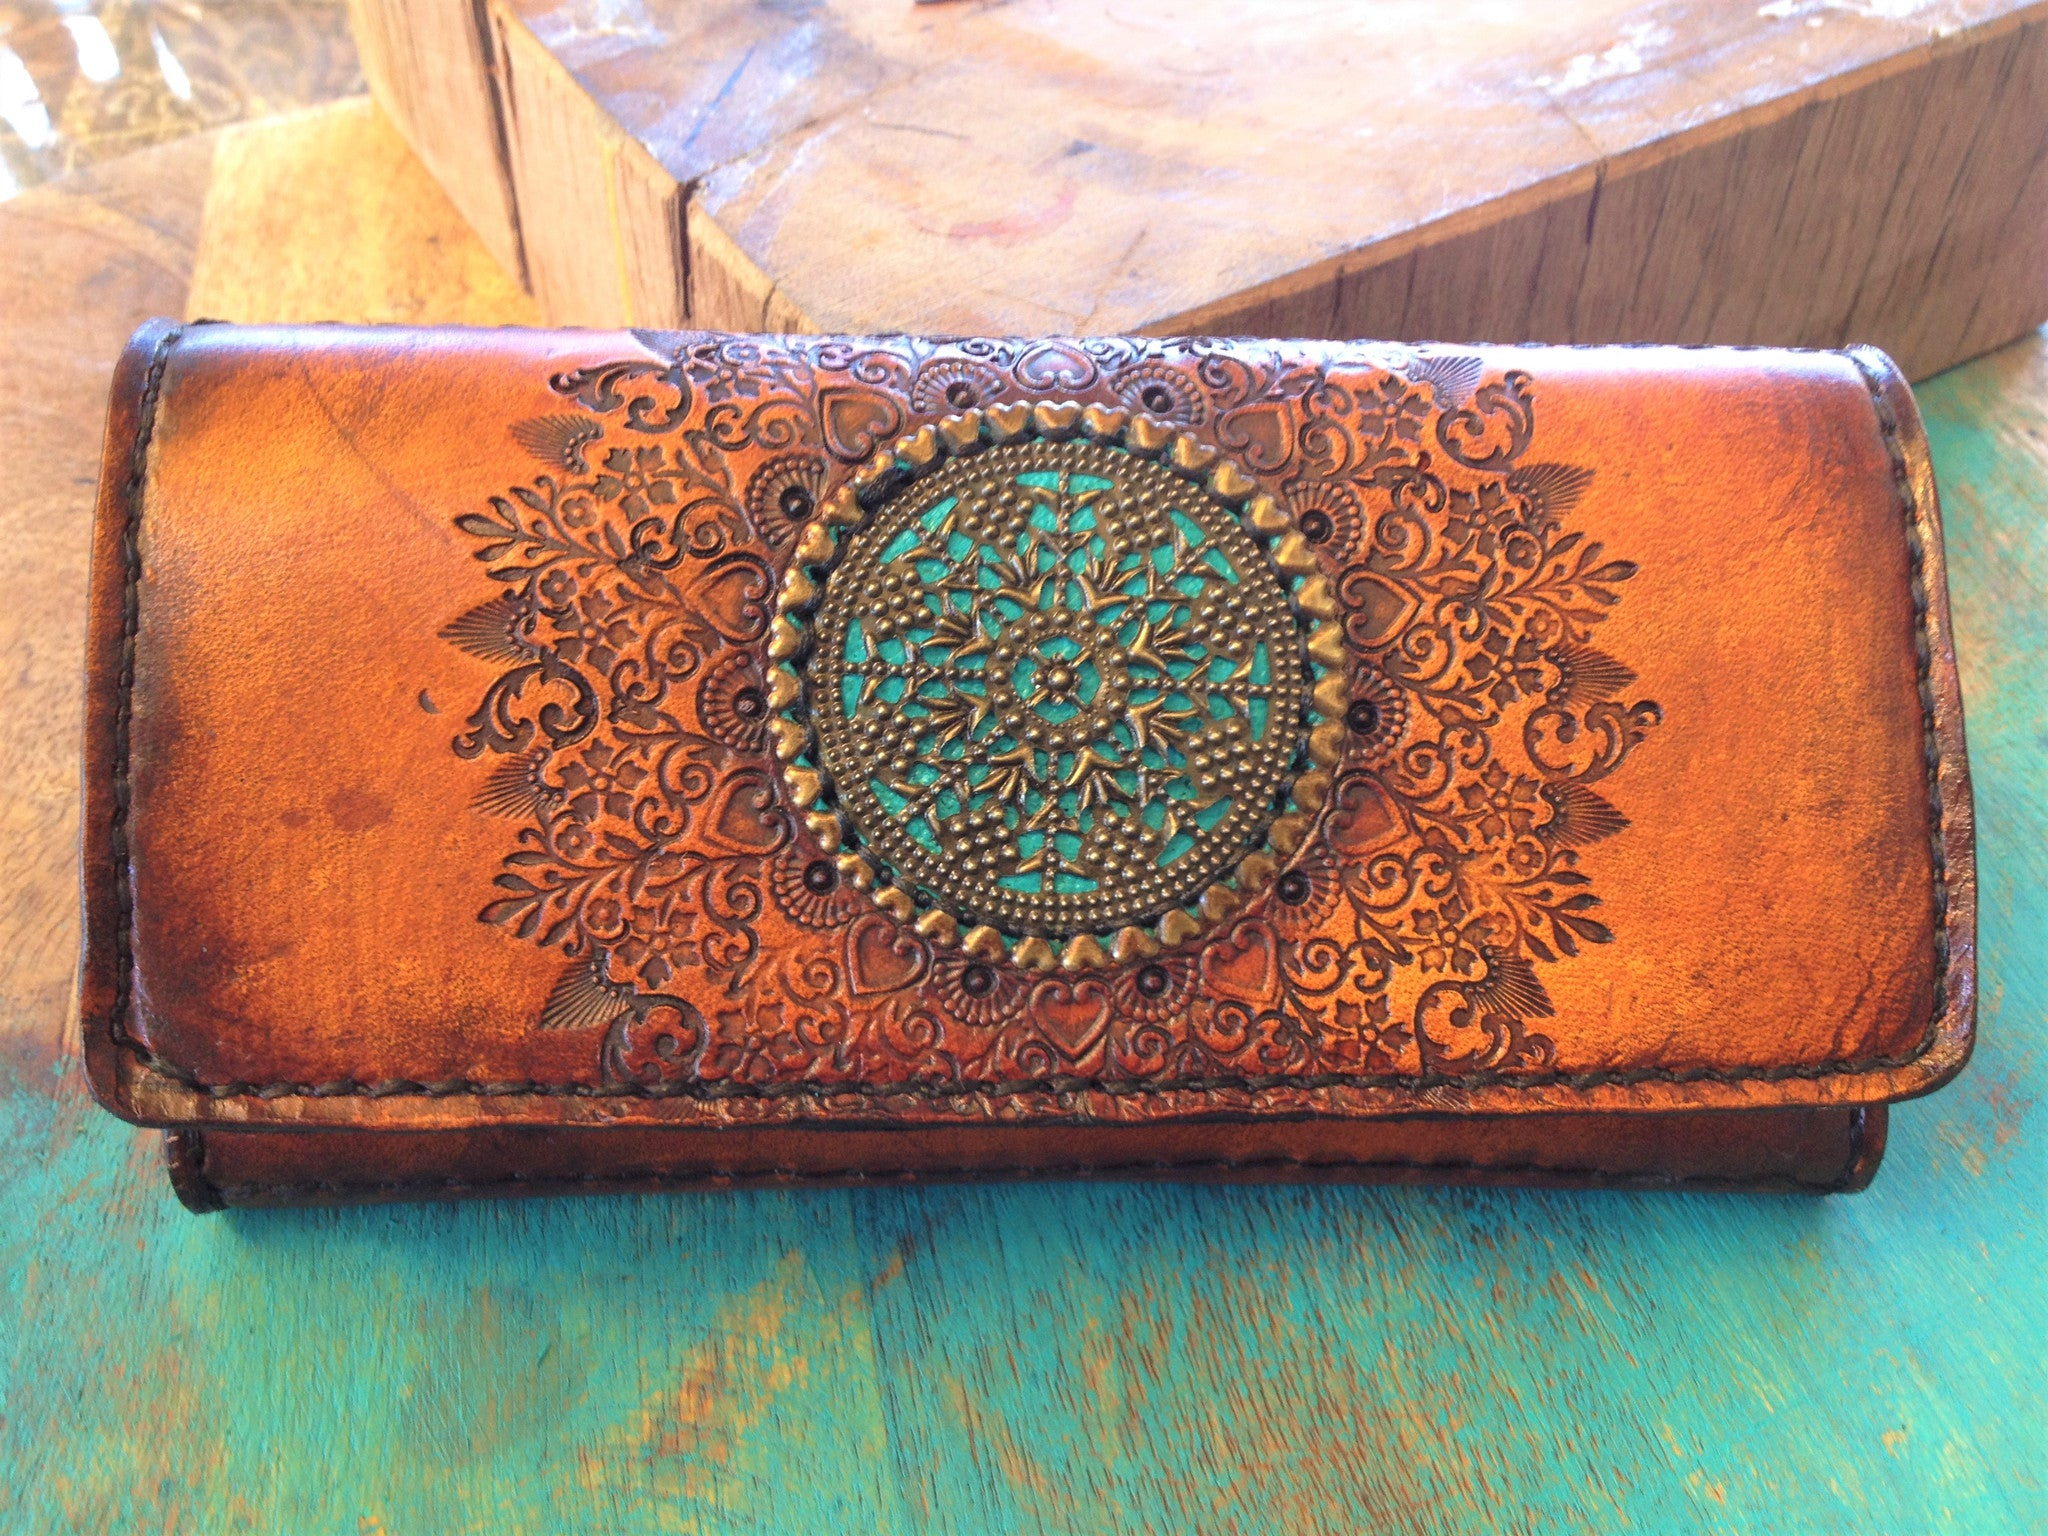 'GYPSY TRAVELER' PURSE *ORDER*